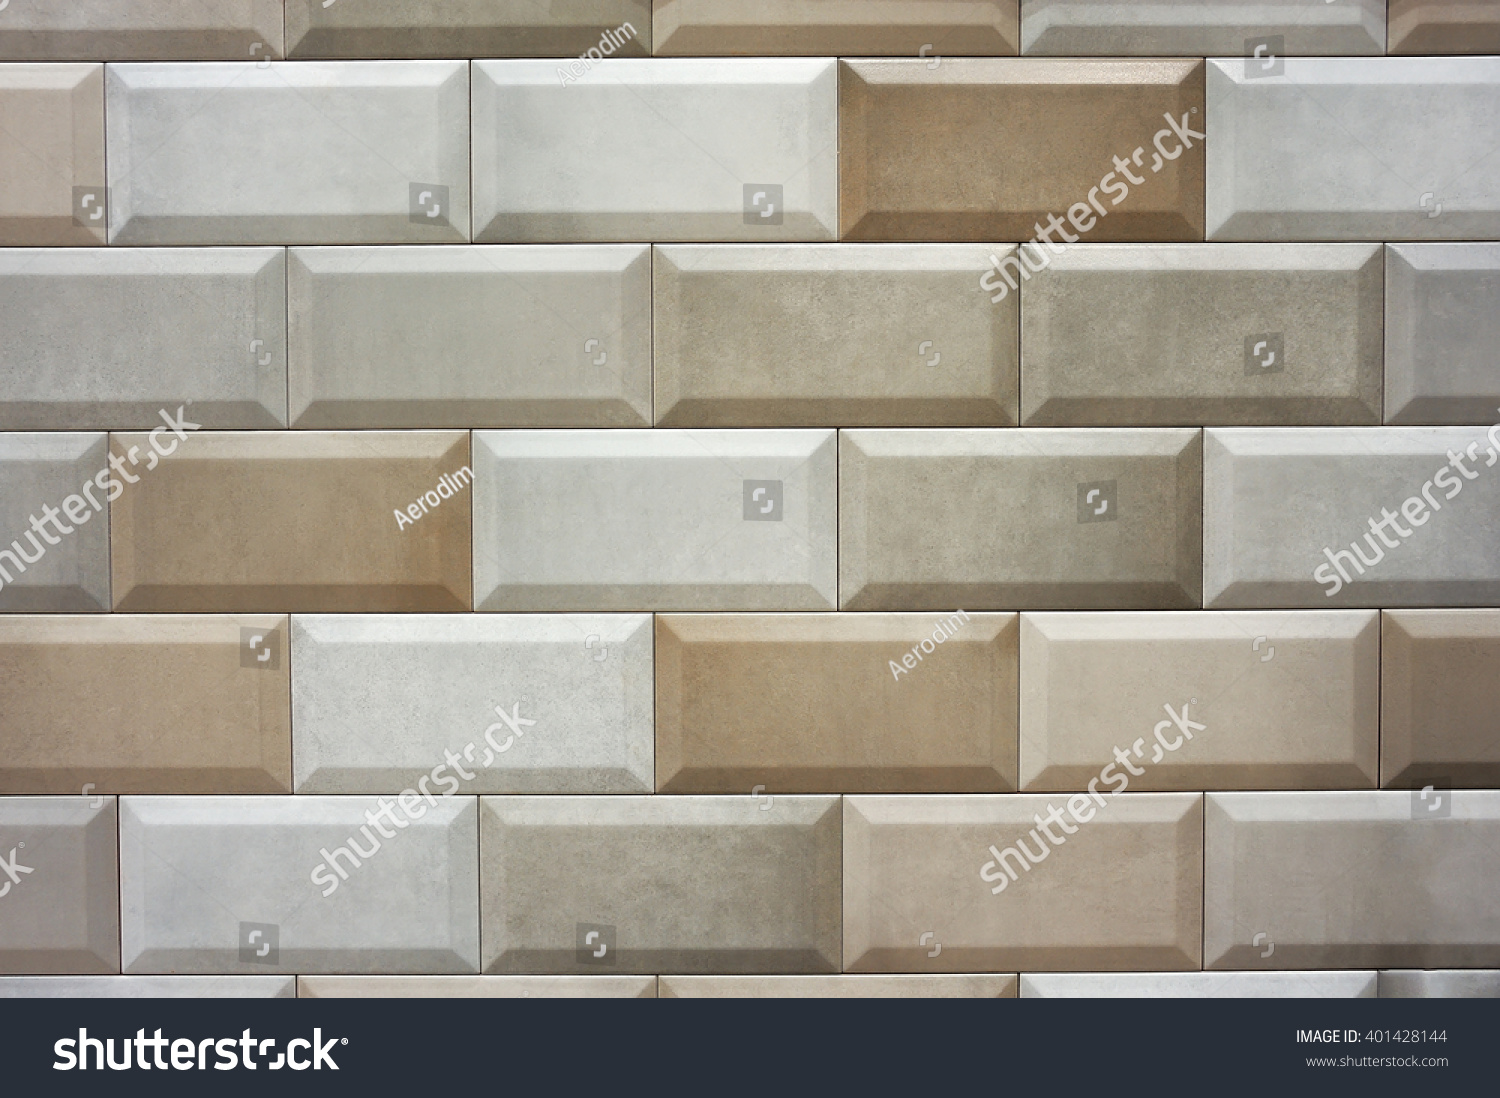 Colorful glossy ceramic tile pattern texture stock photo 401428144 colorful glossy ceramic tile pattern texture background dailygadgetfo Choice Image